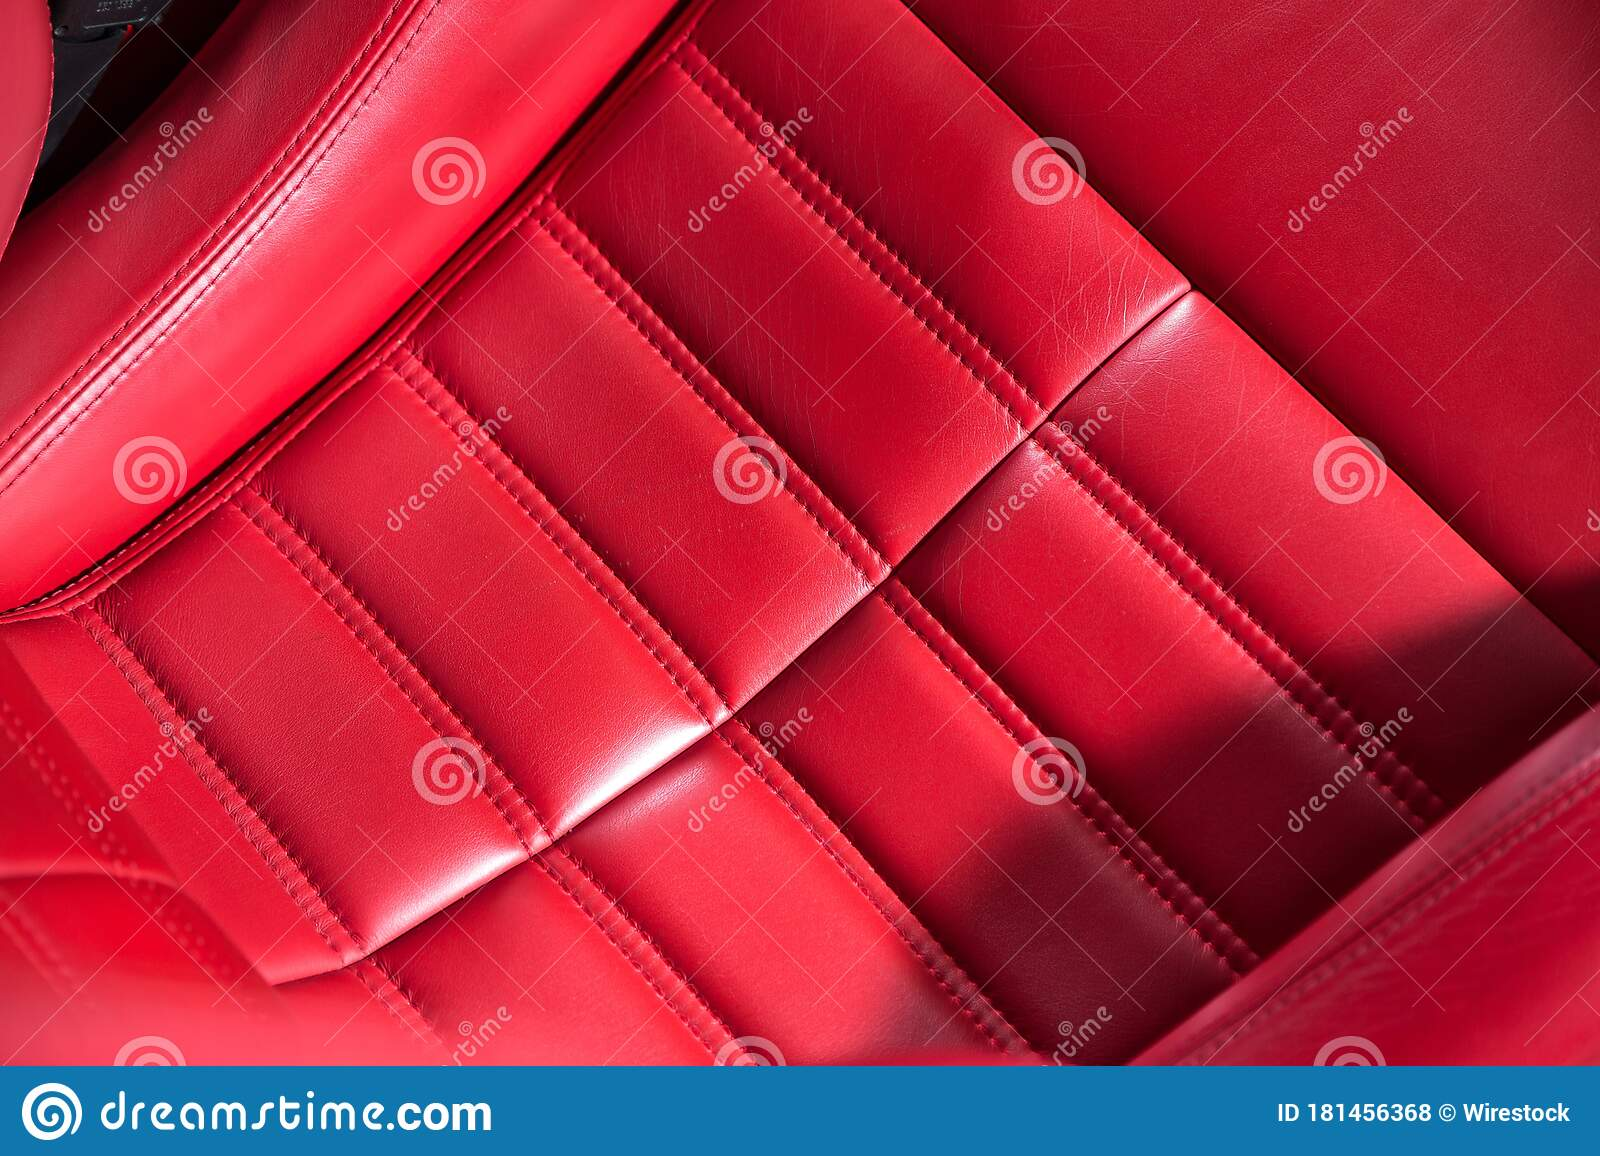 Closeup Shot Of Red Leather Seat Details In A Modern Luxury Car Stock Photo Image Of Drive Leather 181456368